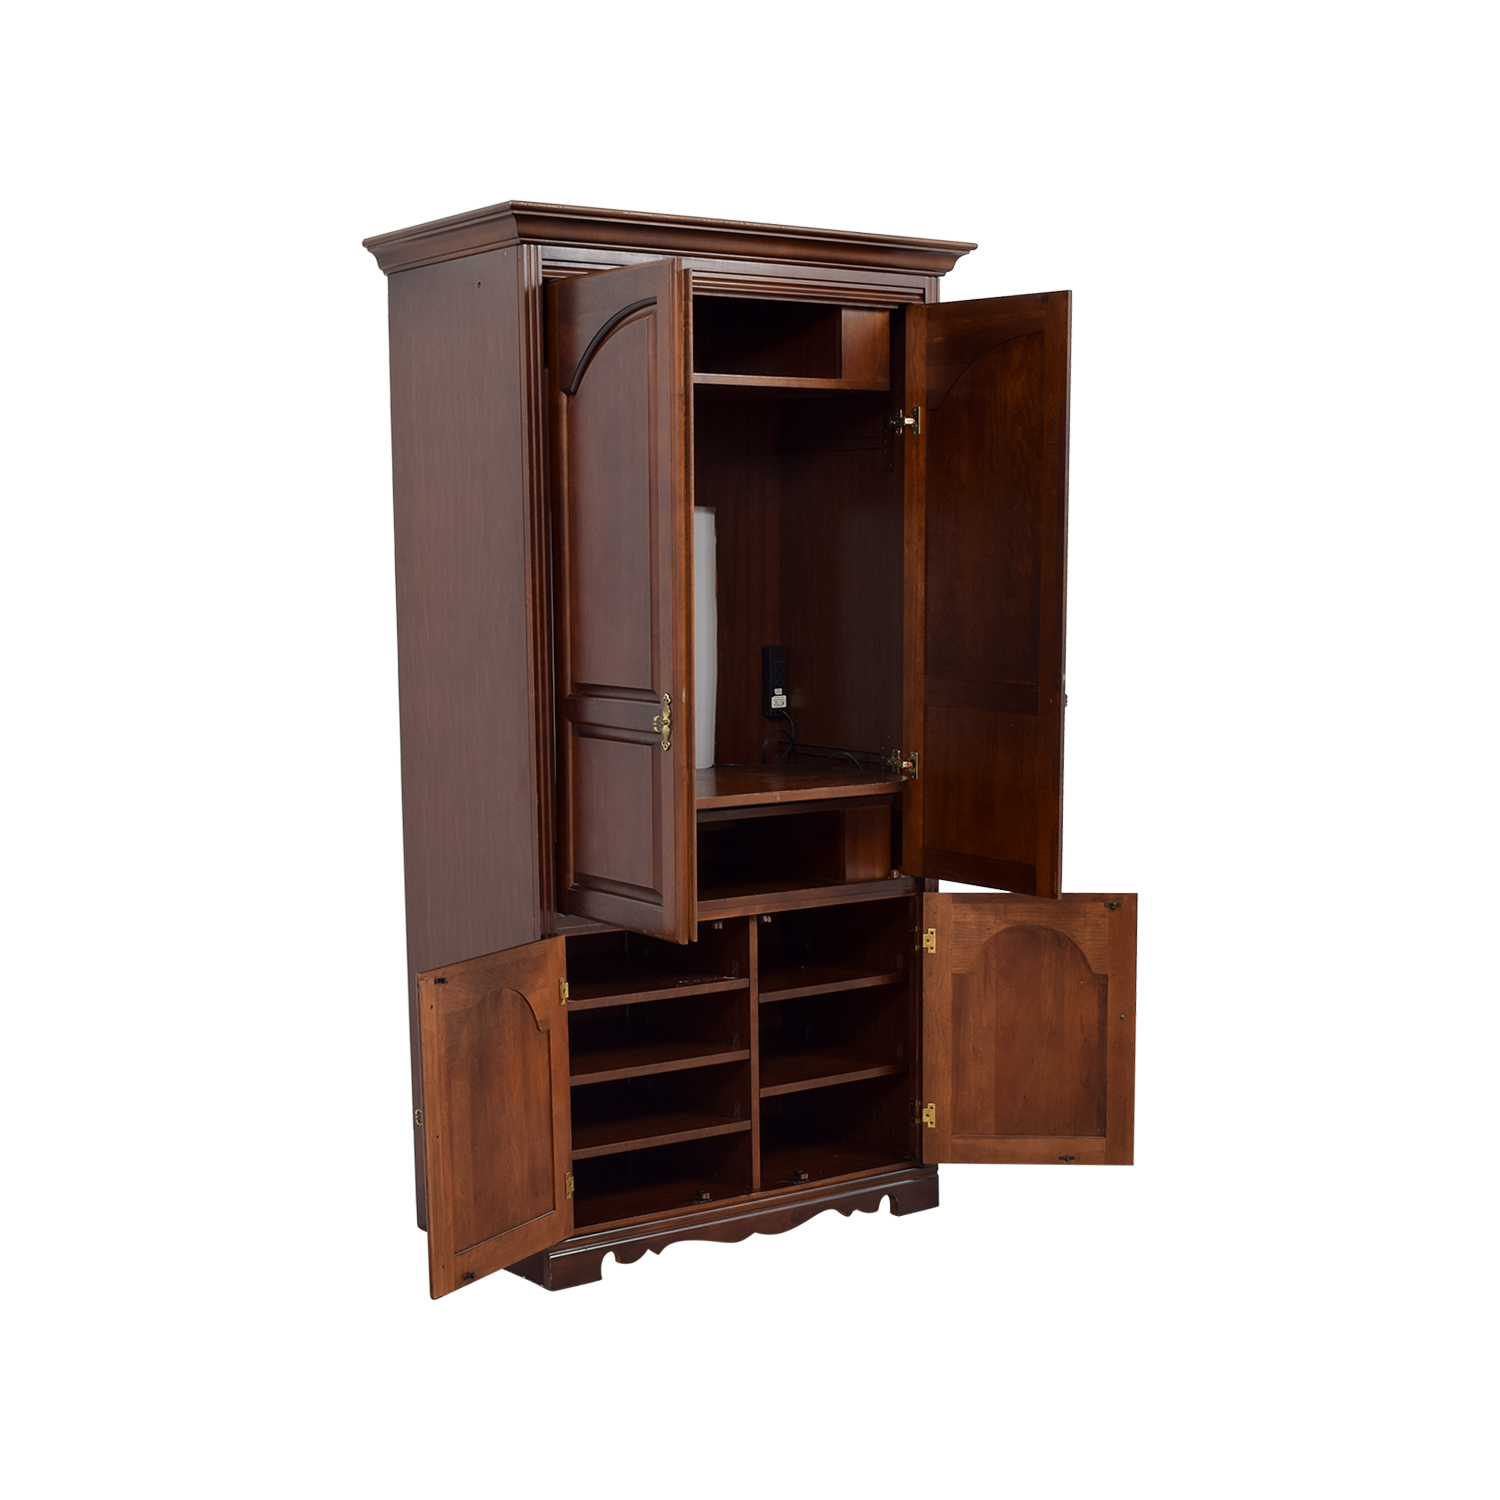 Off broyhill tall wooden tv armoire storage